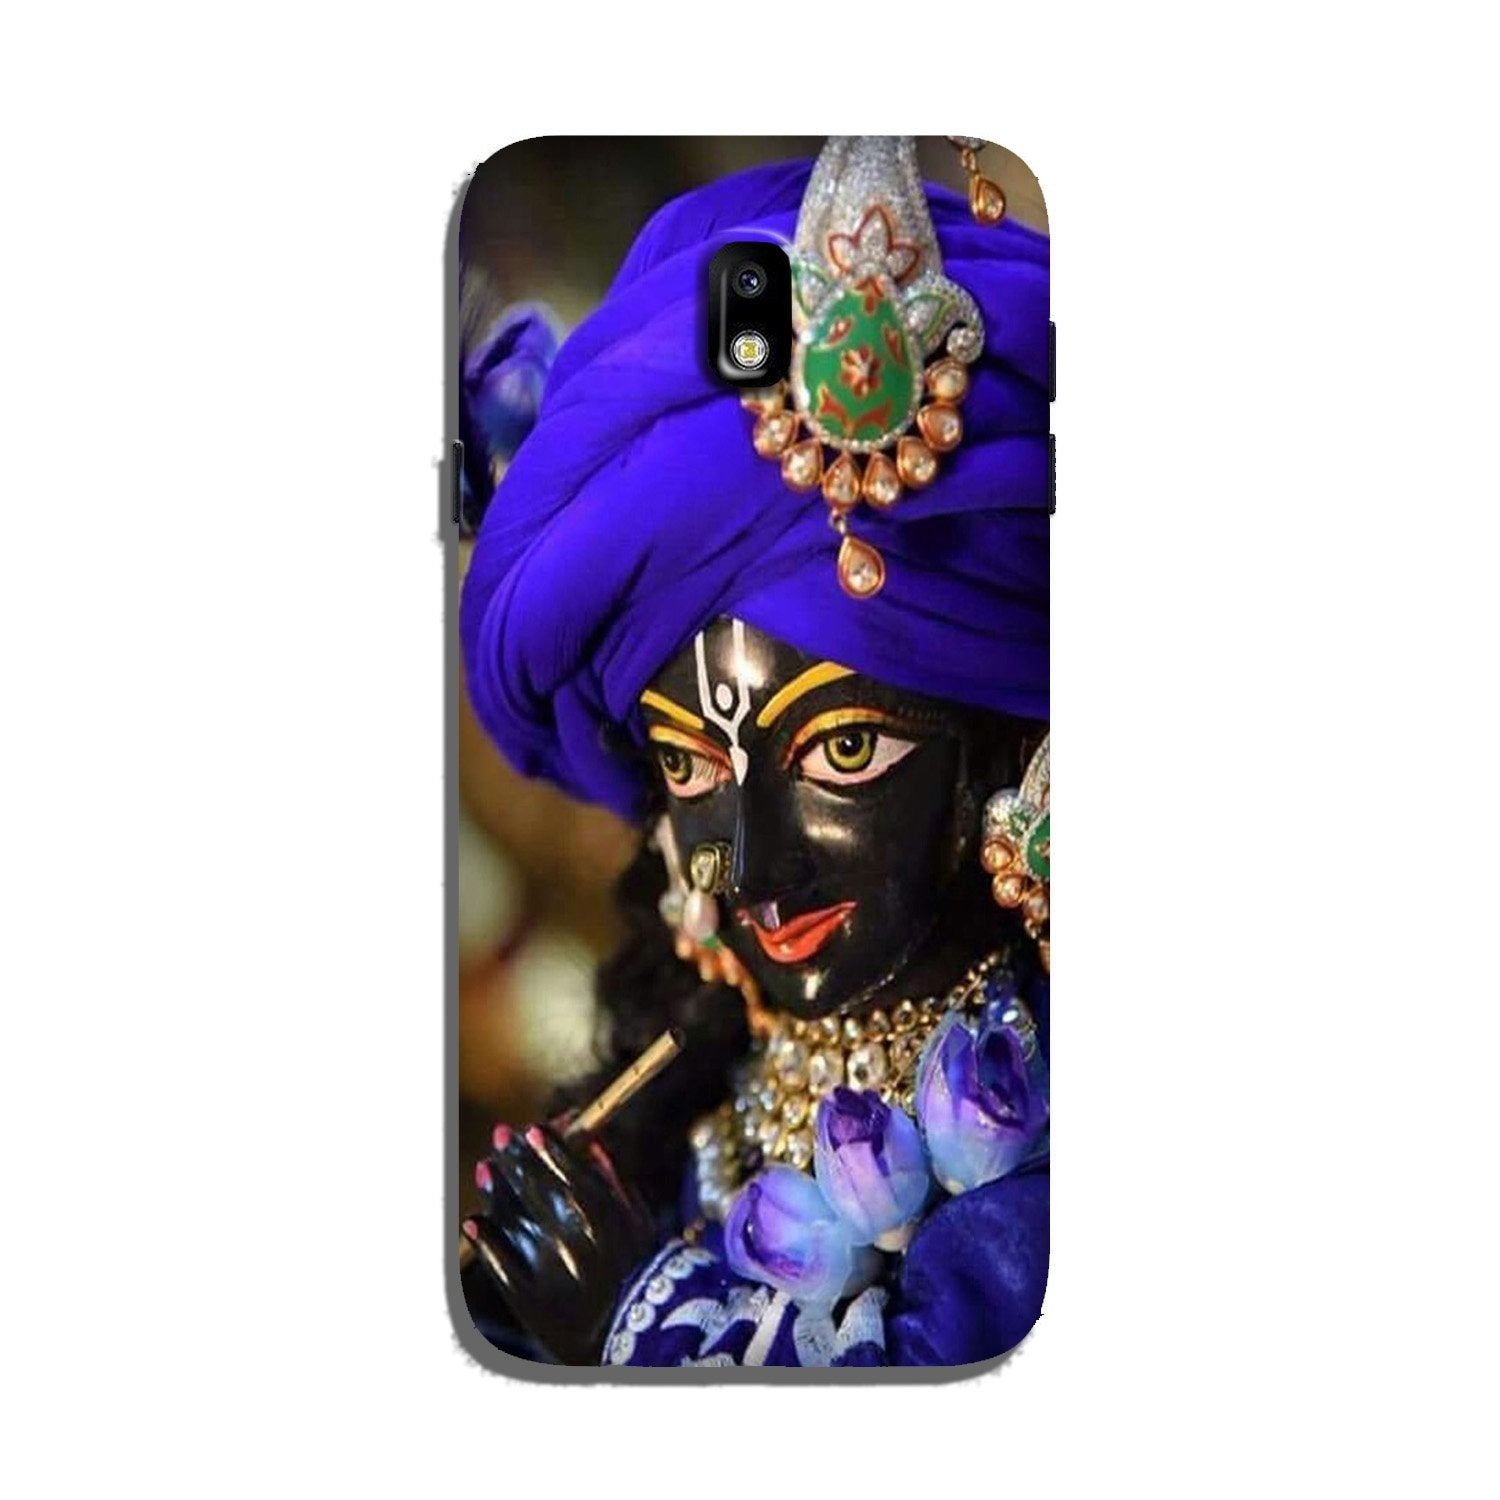 Lord Krishna4 Case for Galaxy J3 Pro